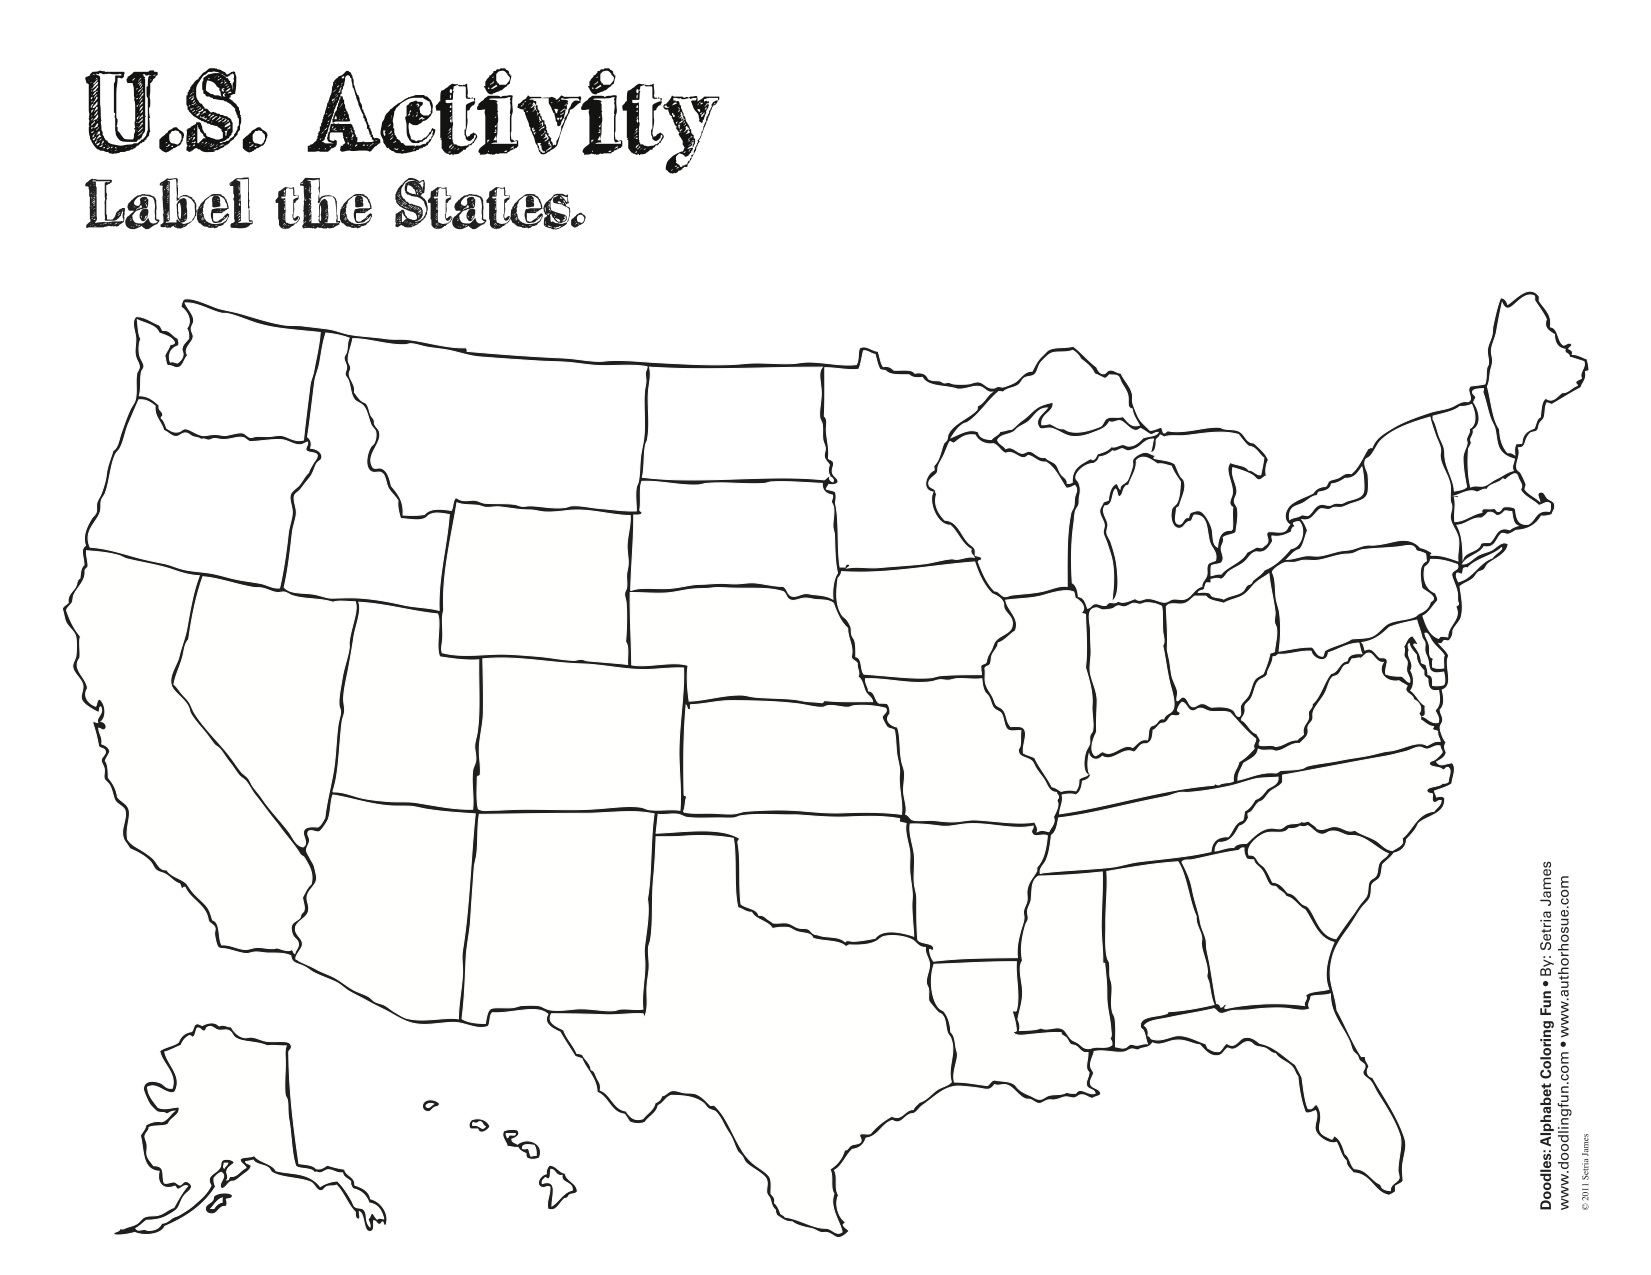 USA Blank Map Blank States Map Dr Odd Blank Usa Map Test Usa Get - Blank map of states and capitals us